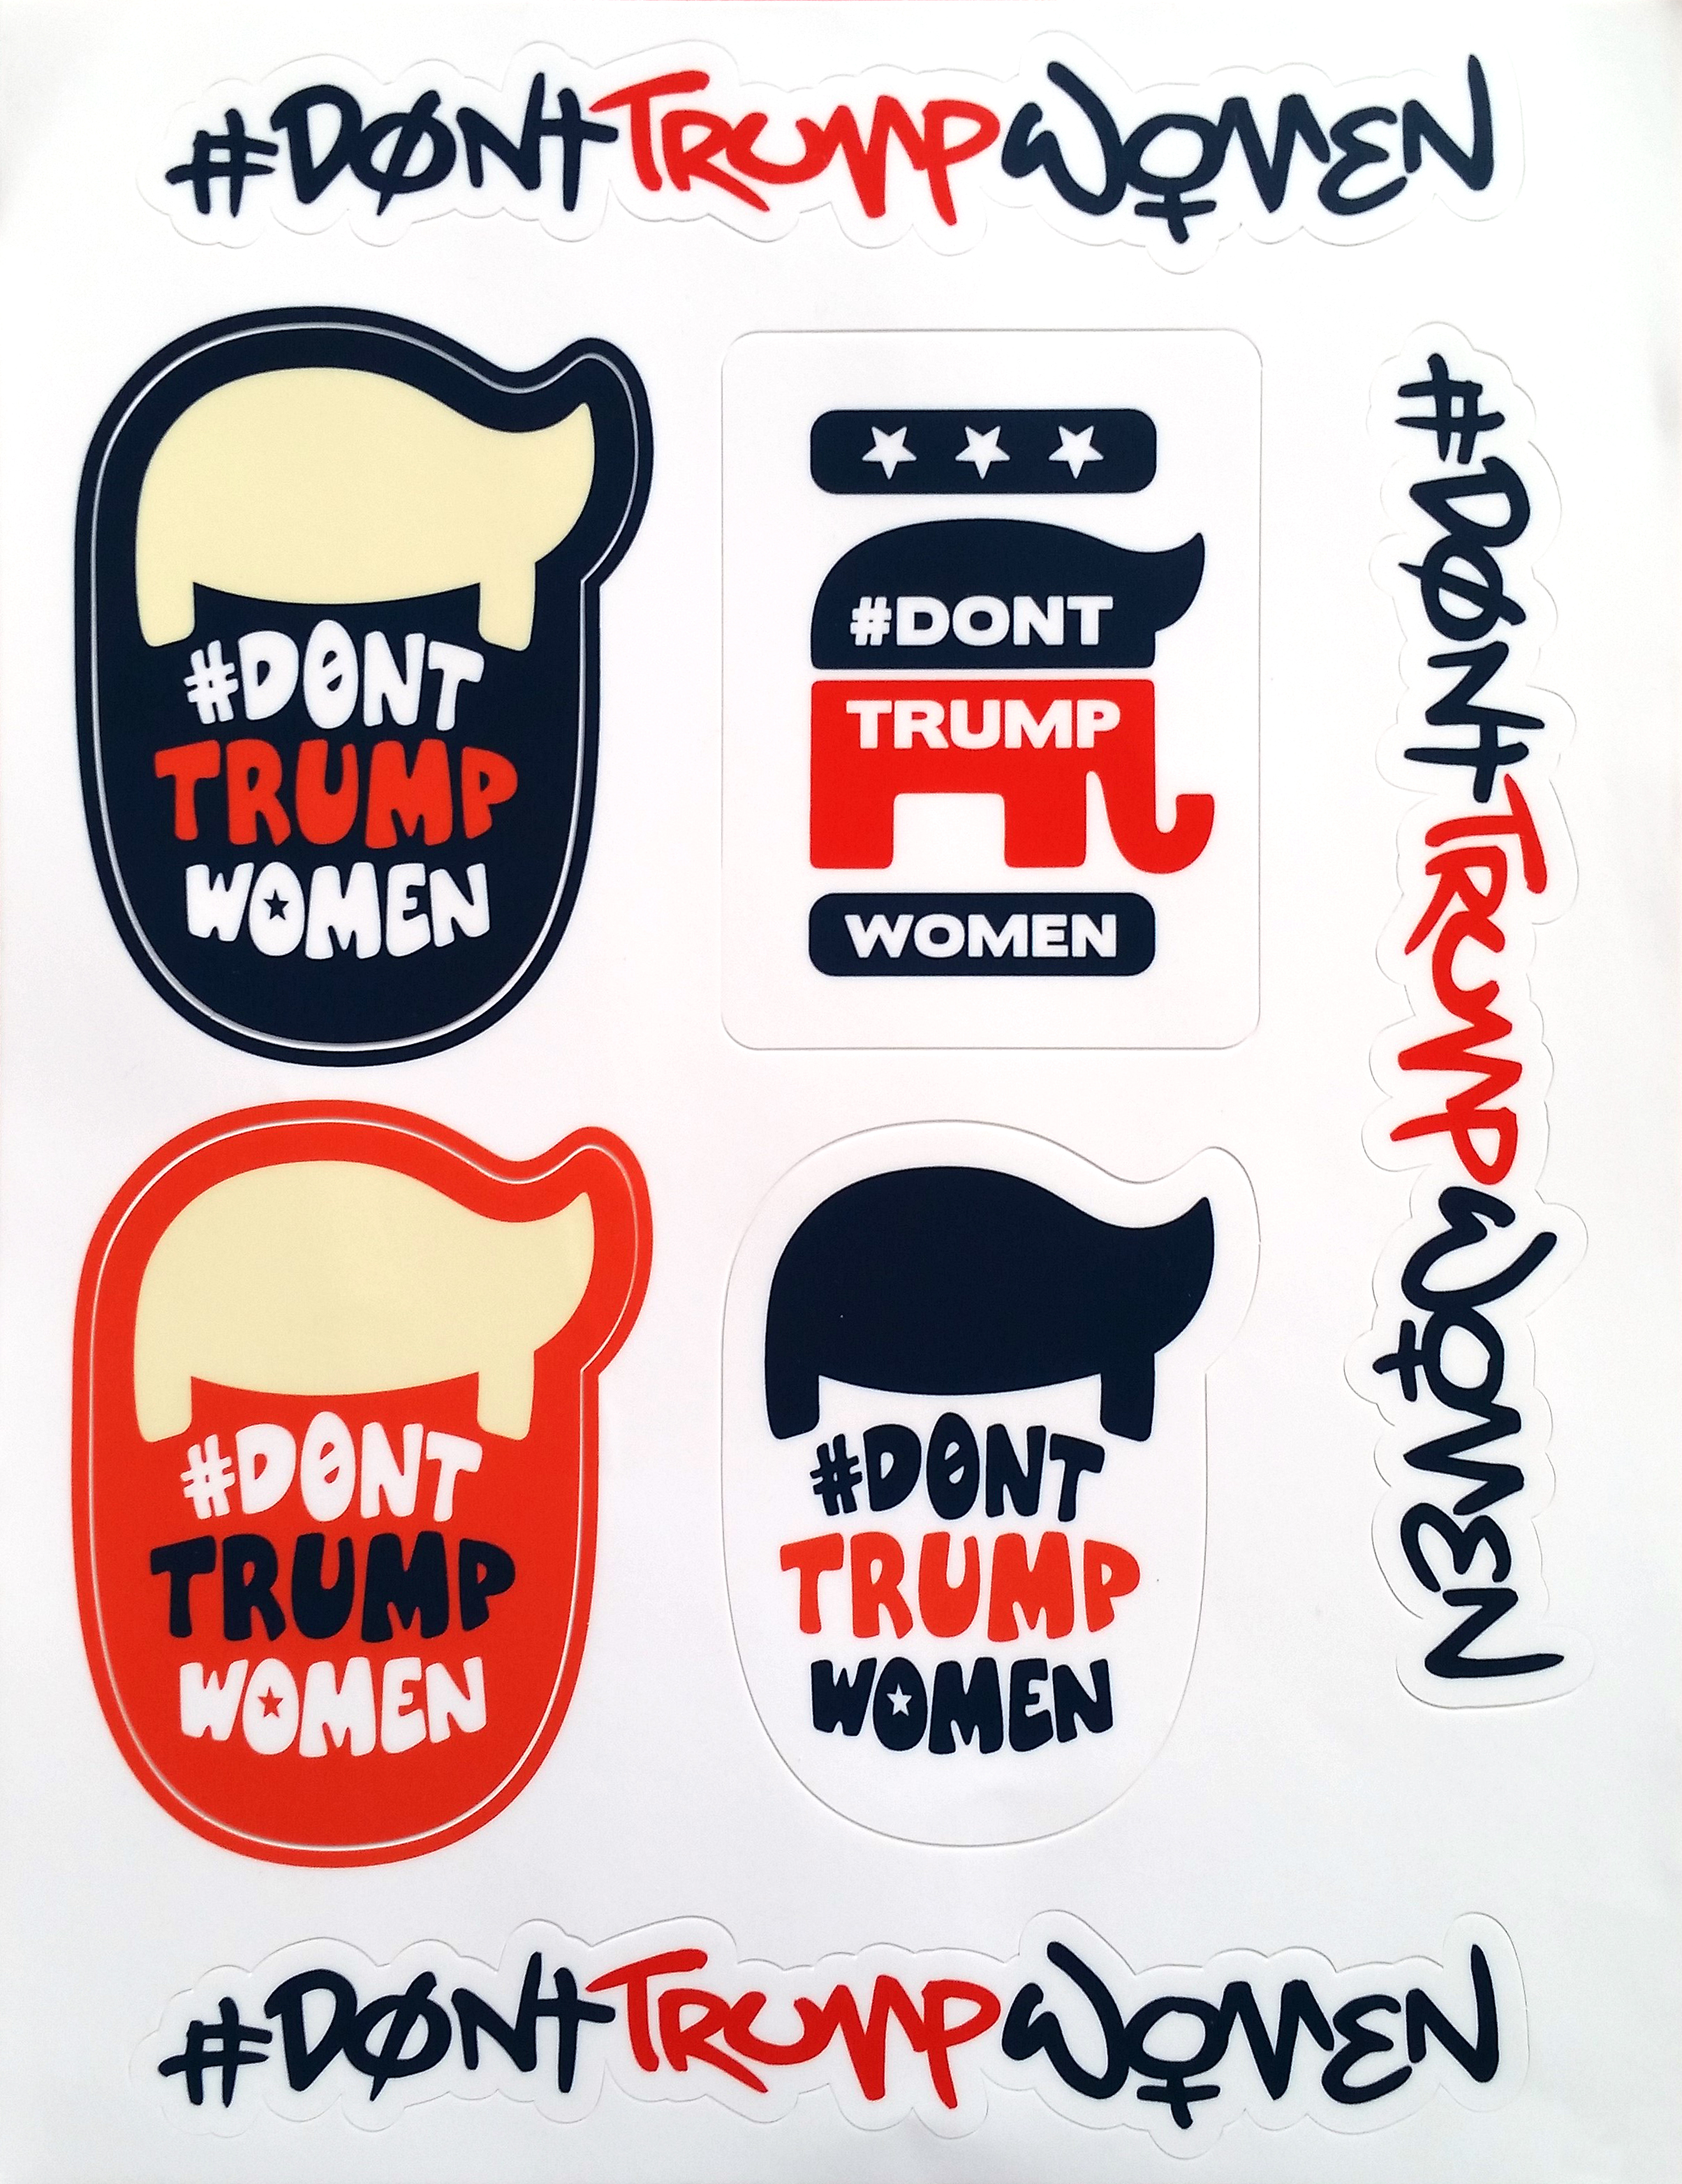 #DontTrumpWomen Sticker Set  First Edition, Printed Vinyl Stickers ©2016-2017 The Femme Project